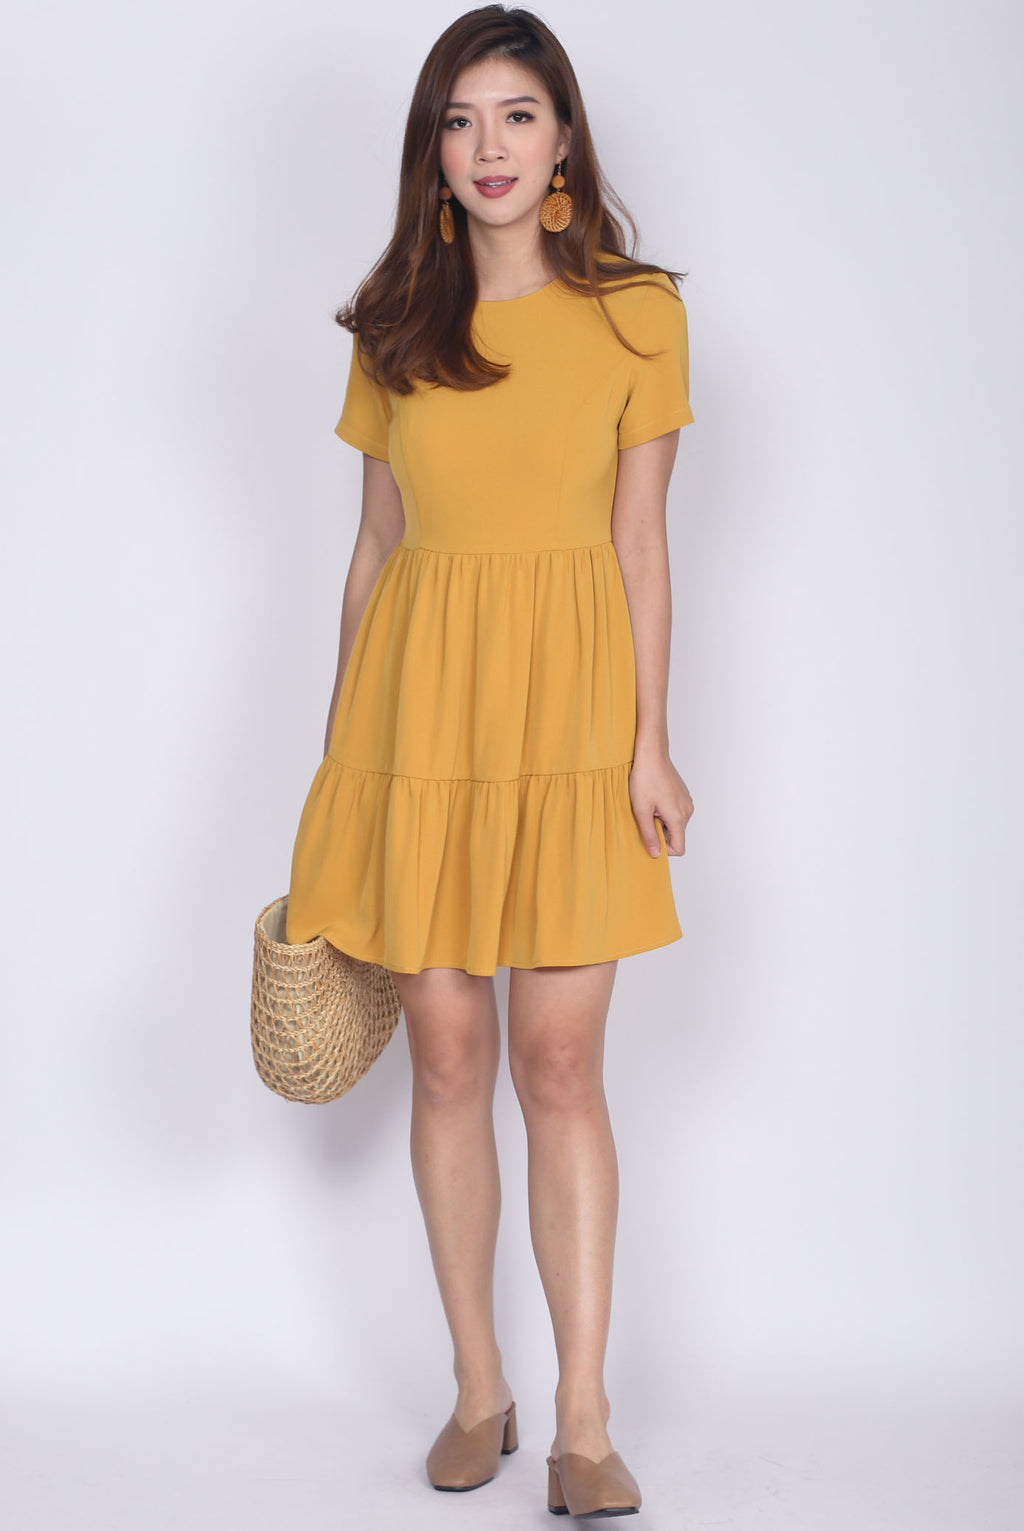 *Restock* Hertha Sleeved Tiered Dress In Marigold